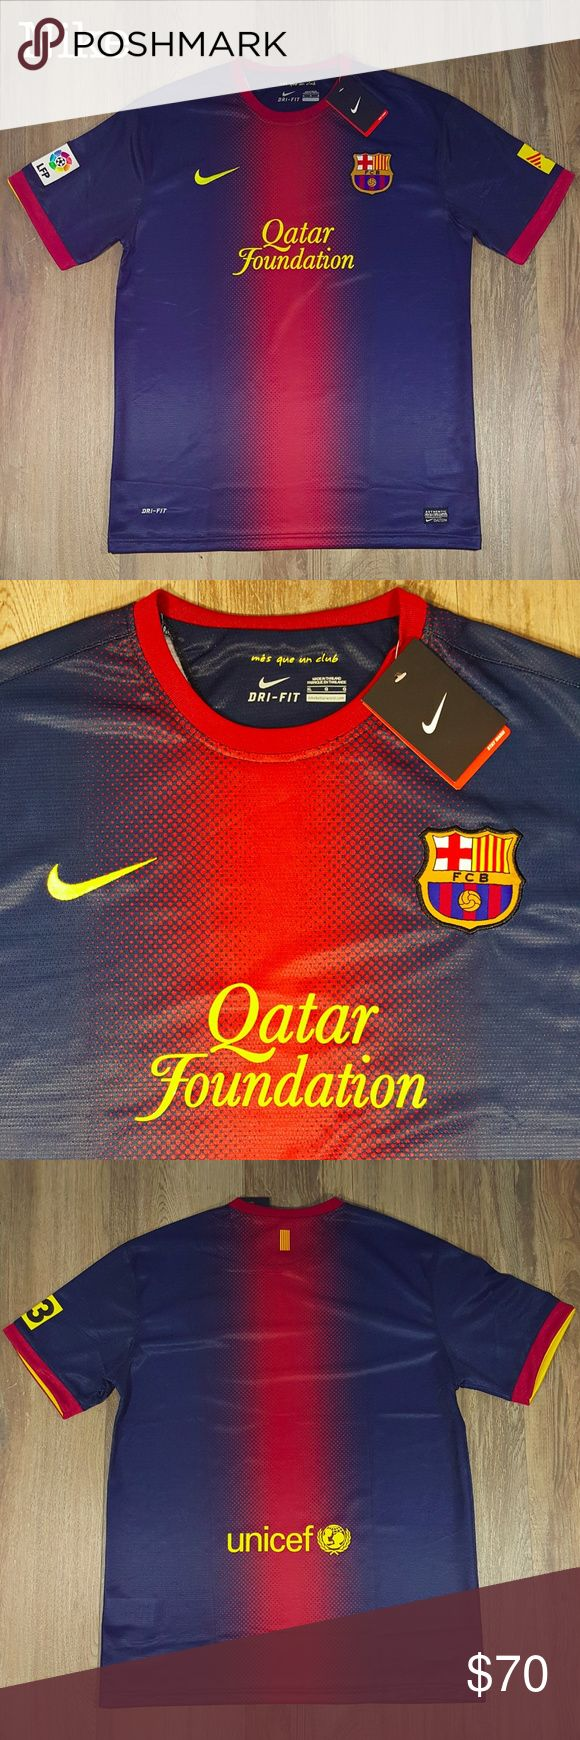 Nike FCB Qatar Foundation Barcelona Soccer XL FCB Qatar Foundation Barcelona Soccer Futbol Jersey Shirt by Nike XL Qatar Foundation is printed on front. Embroidered Nike logo by neckline. FCB applique. LFP applique on sleeve. Unicef logo on back. Jersey style. Short sleeves. Polyester Measures 22 inches from pit to pit and is 31 inches long. All measurements taken with garment laying flat. Images represent exactly how product/s look/s like. Ships within 24 hours after purchasing.  BUNDLE…